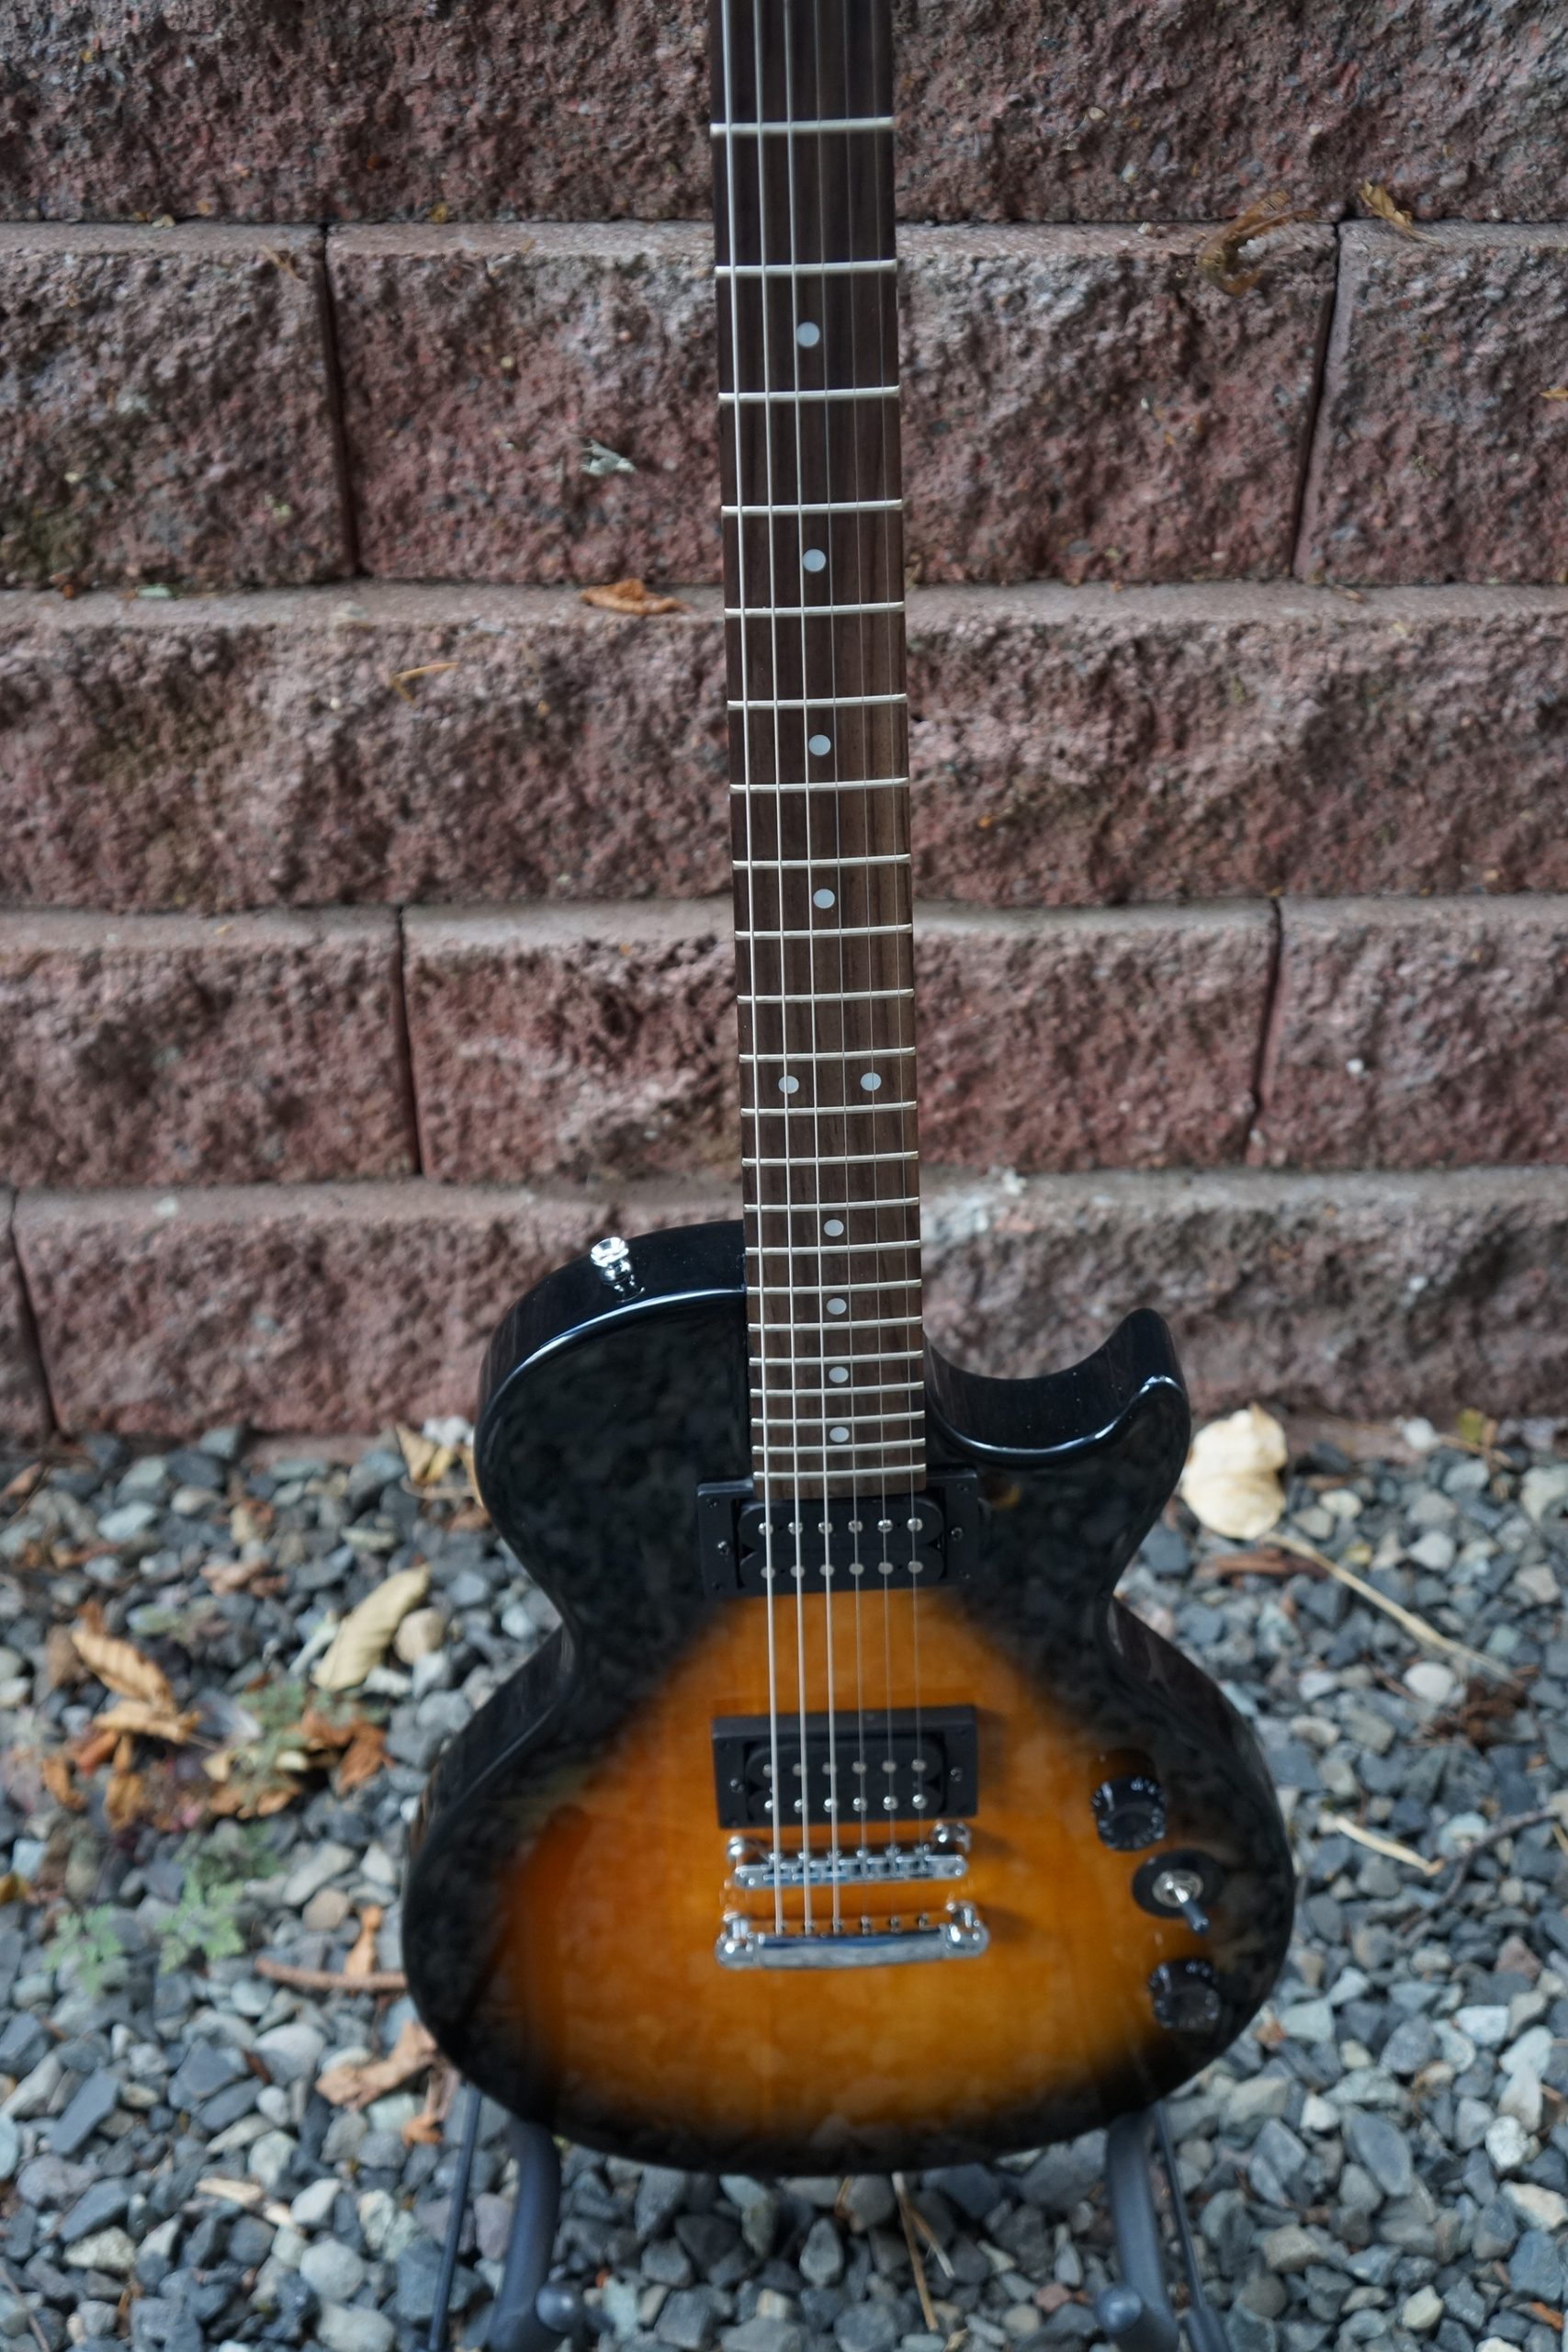 Epiphone by Gibson Special II Limited Edition: Classic Orange Burst with Gothic Cross